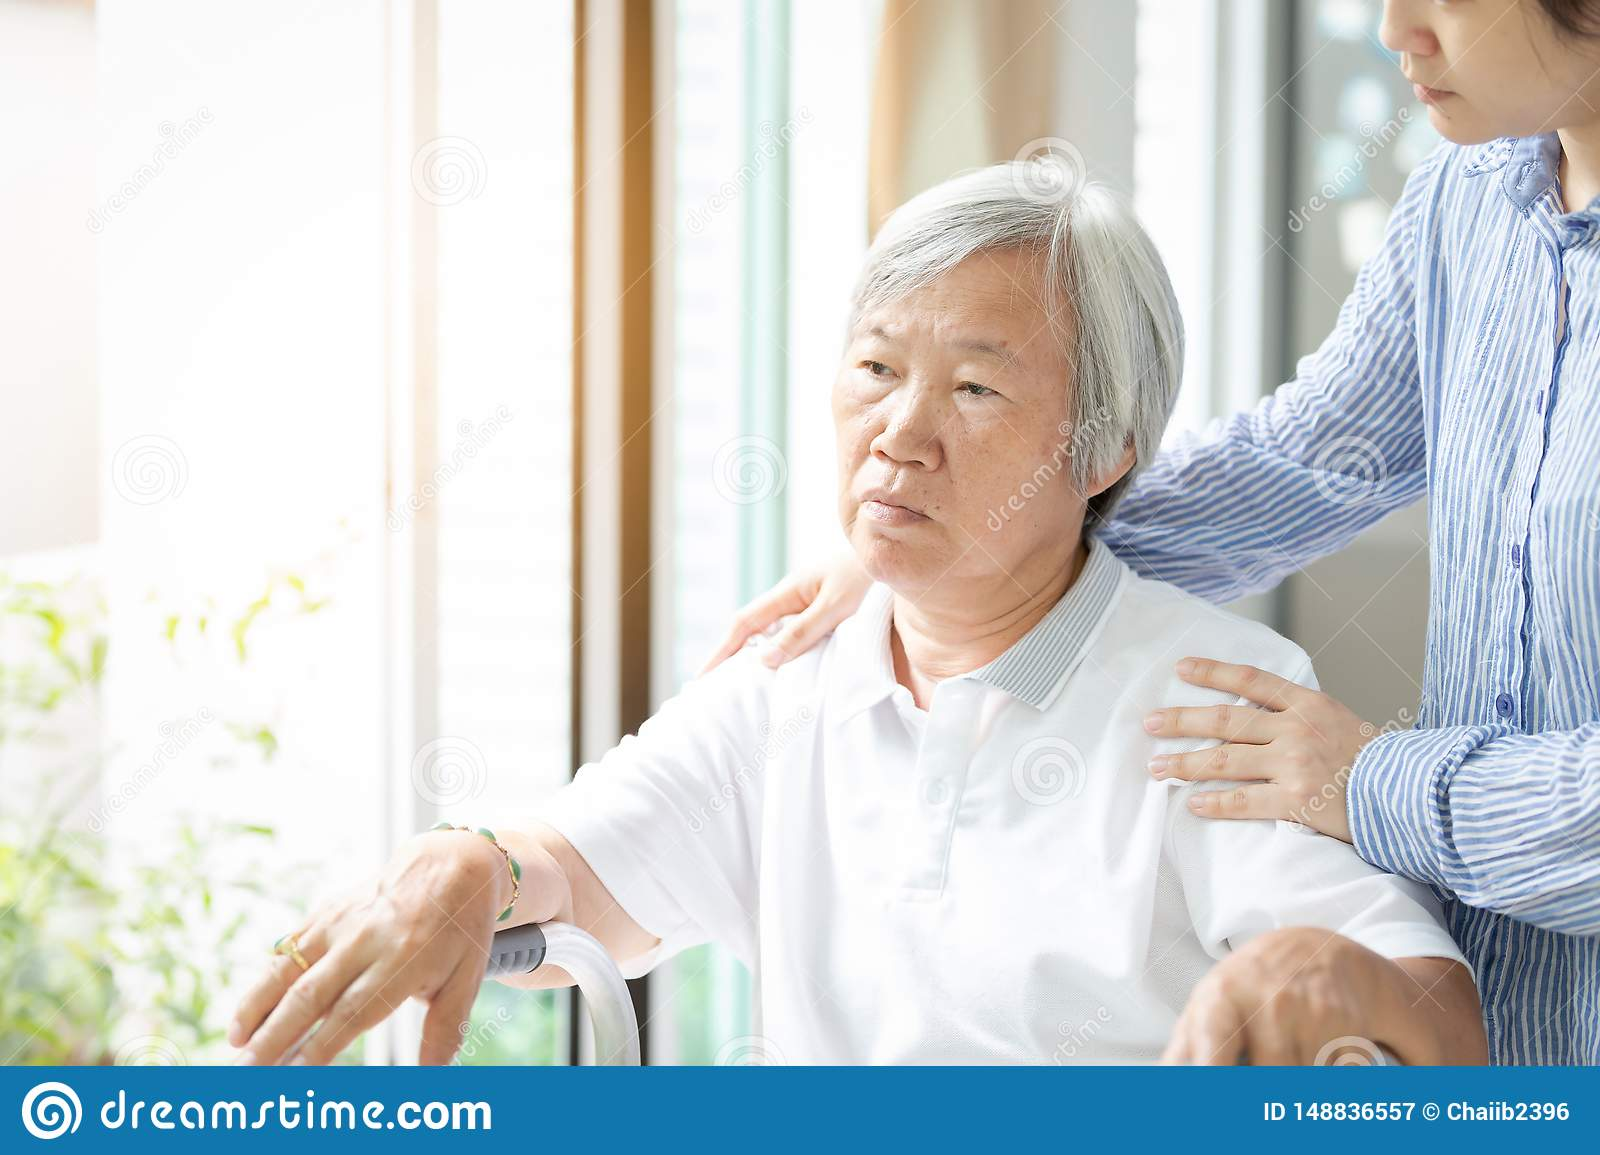 Caregiver asian daughter or young nurse standing behind the senior woman looking at window with hand on elder woman's shoulder,